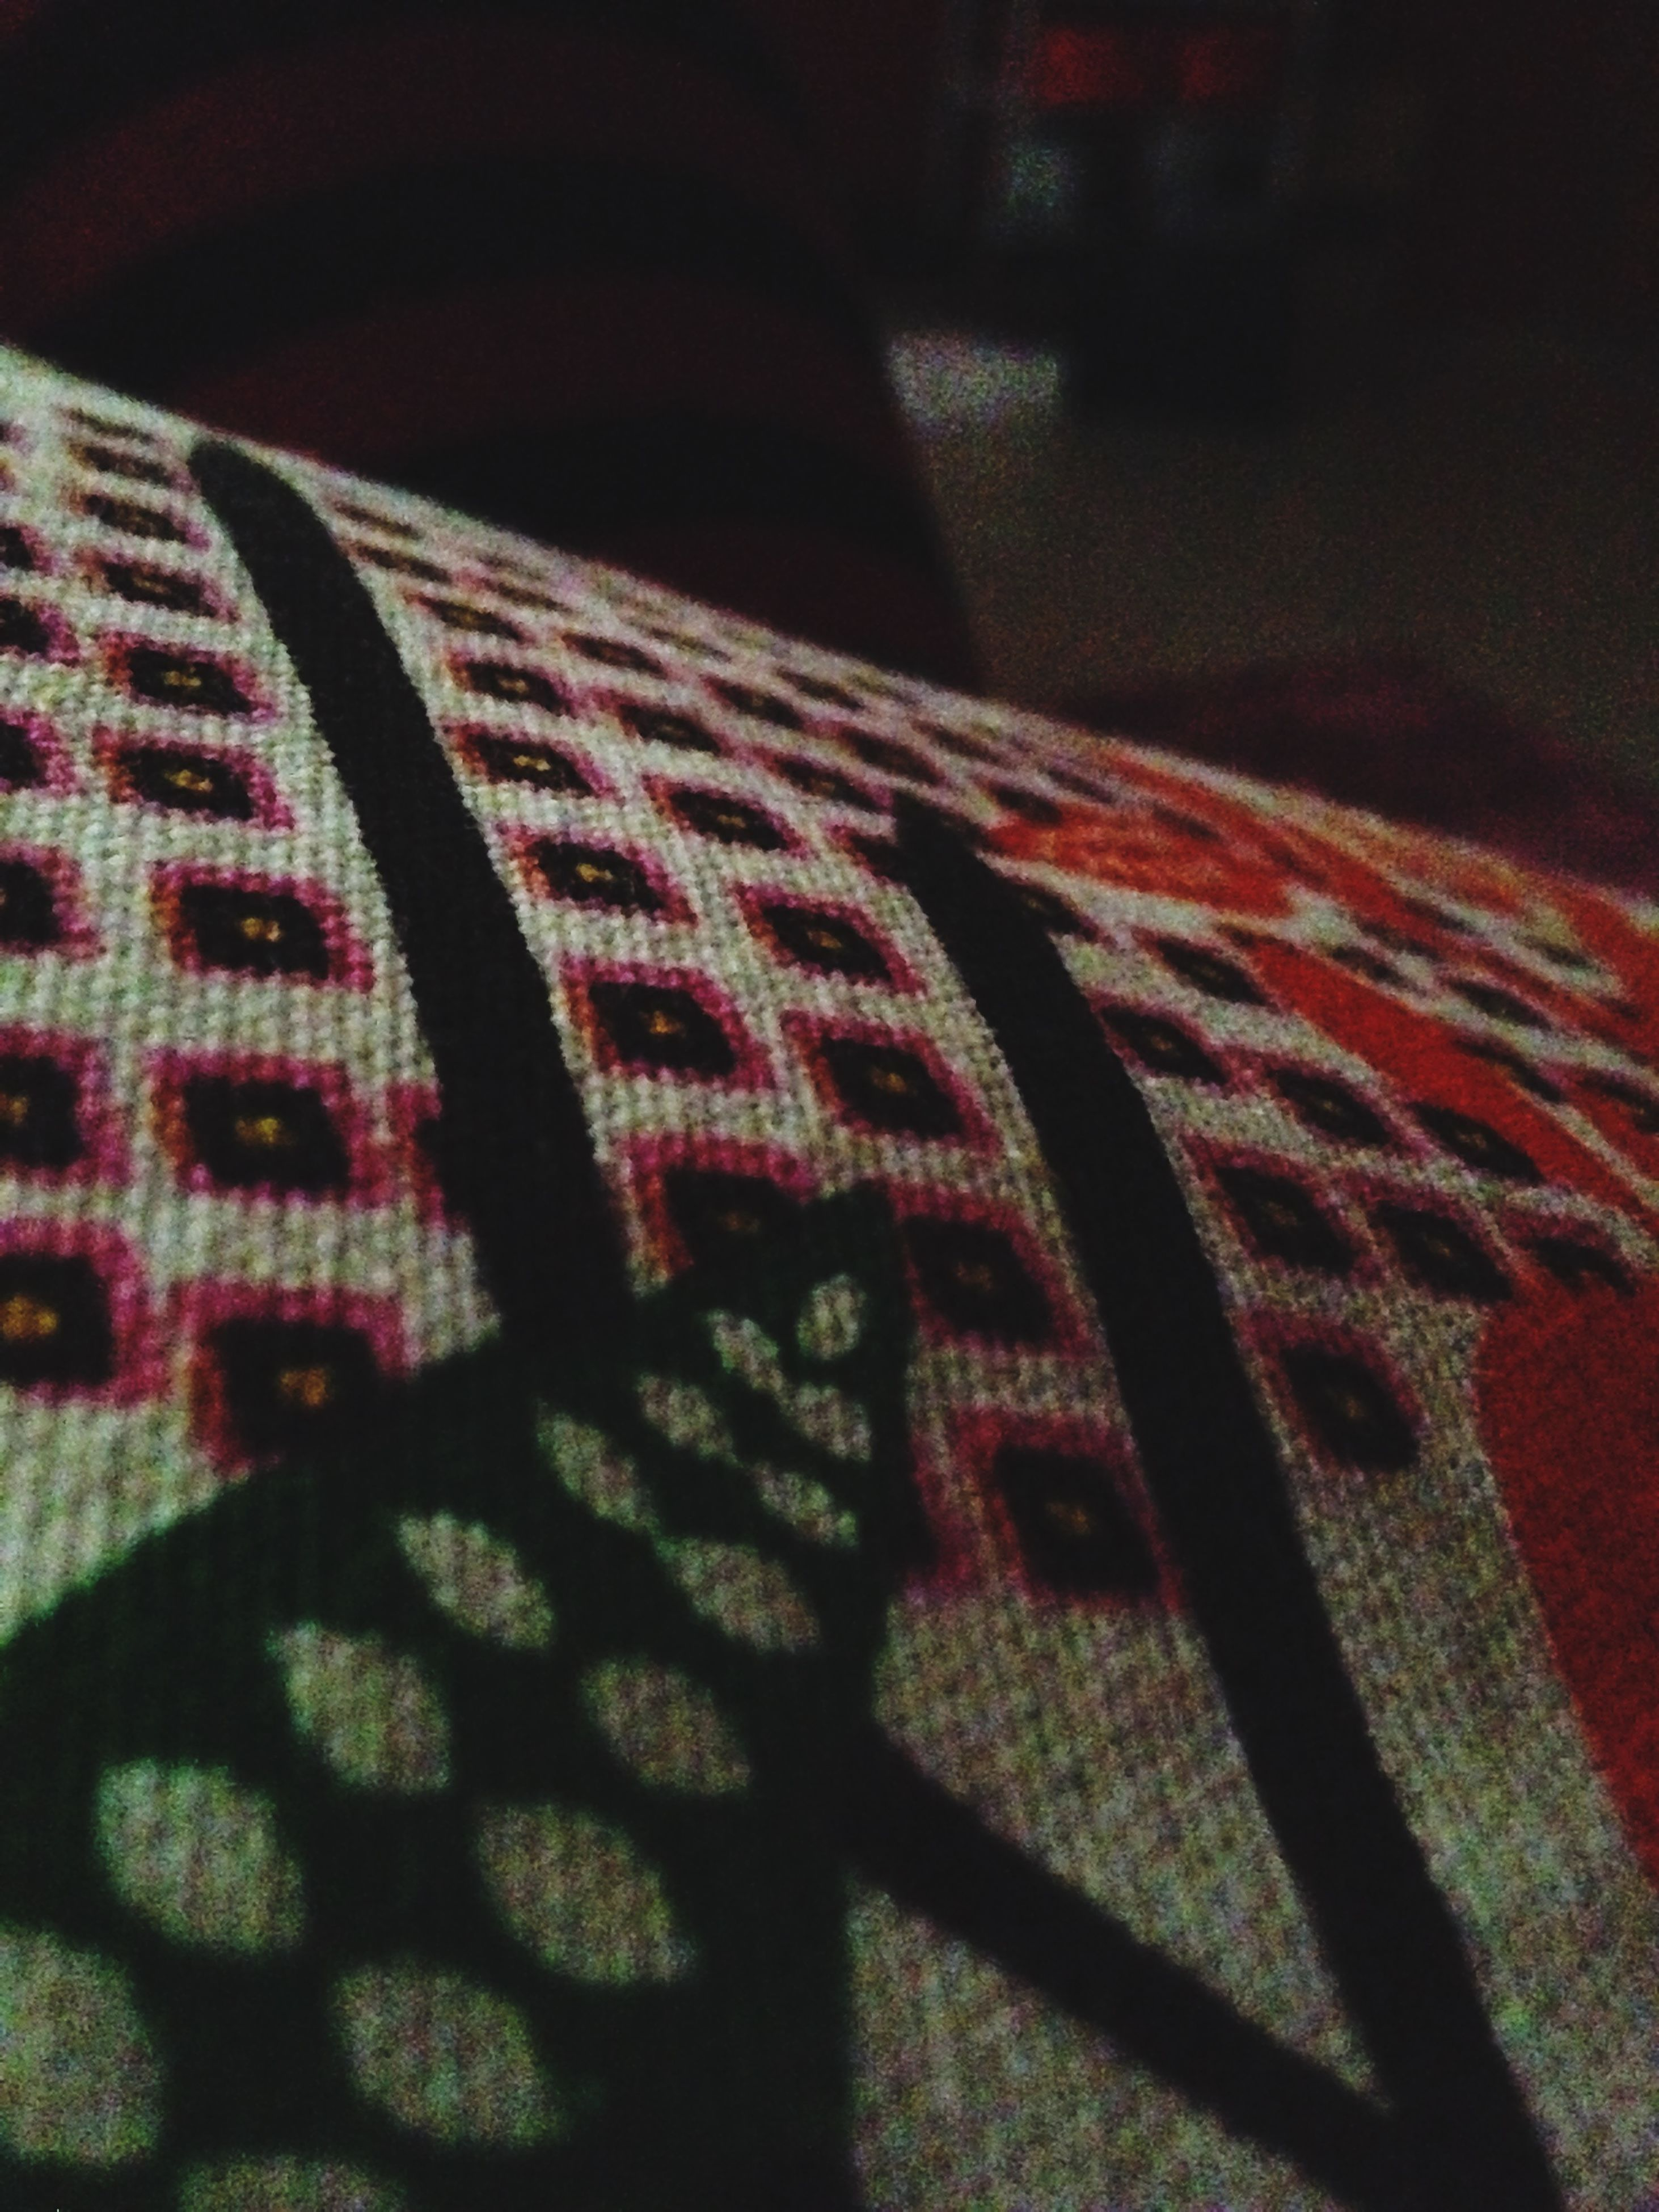 indoors, red, close-up, textile, fabric, pattern, shadow, high angle view, still life, striped, design, no people, sunlight, absence, paper, home interior, black color, bed, detail, textured